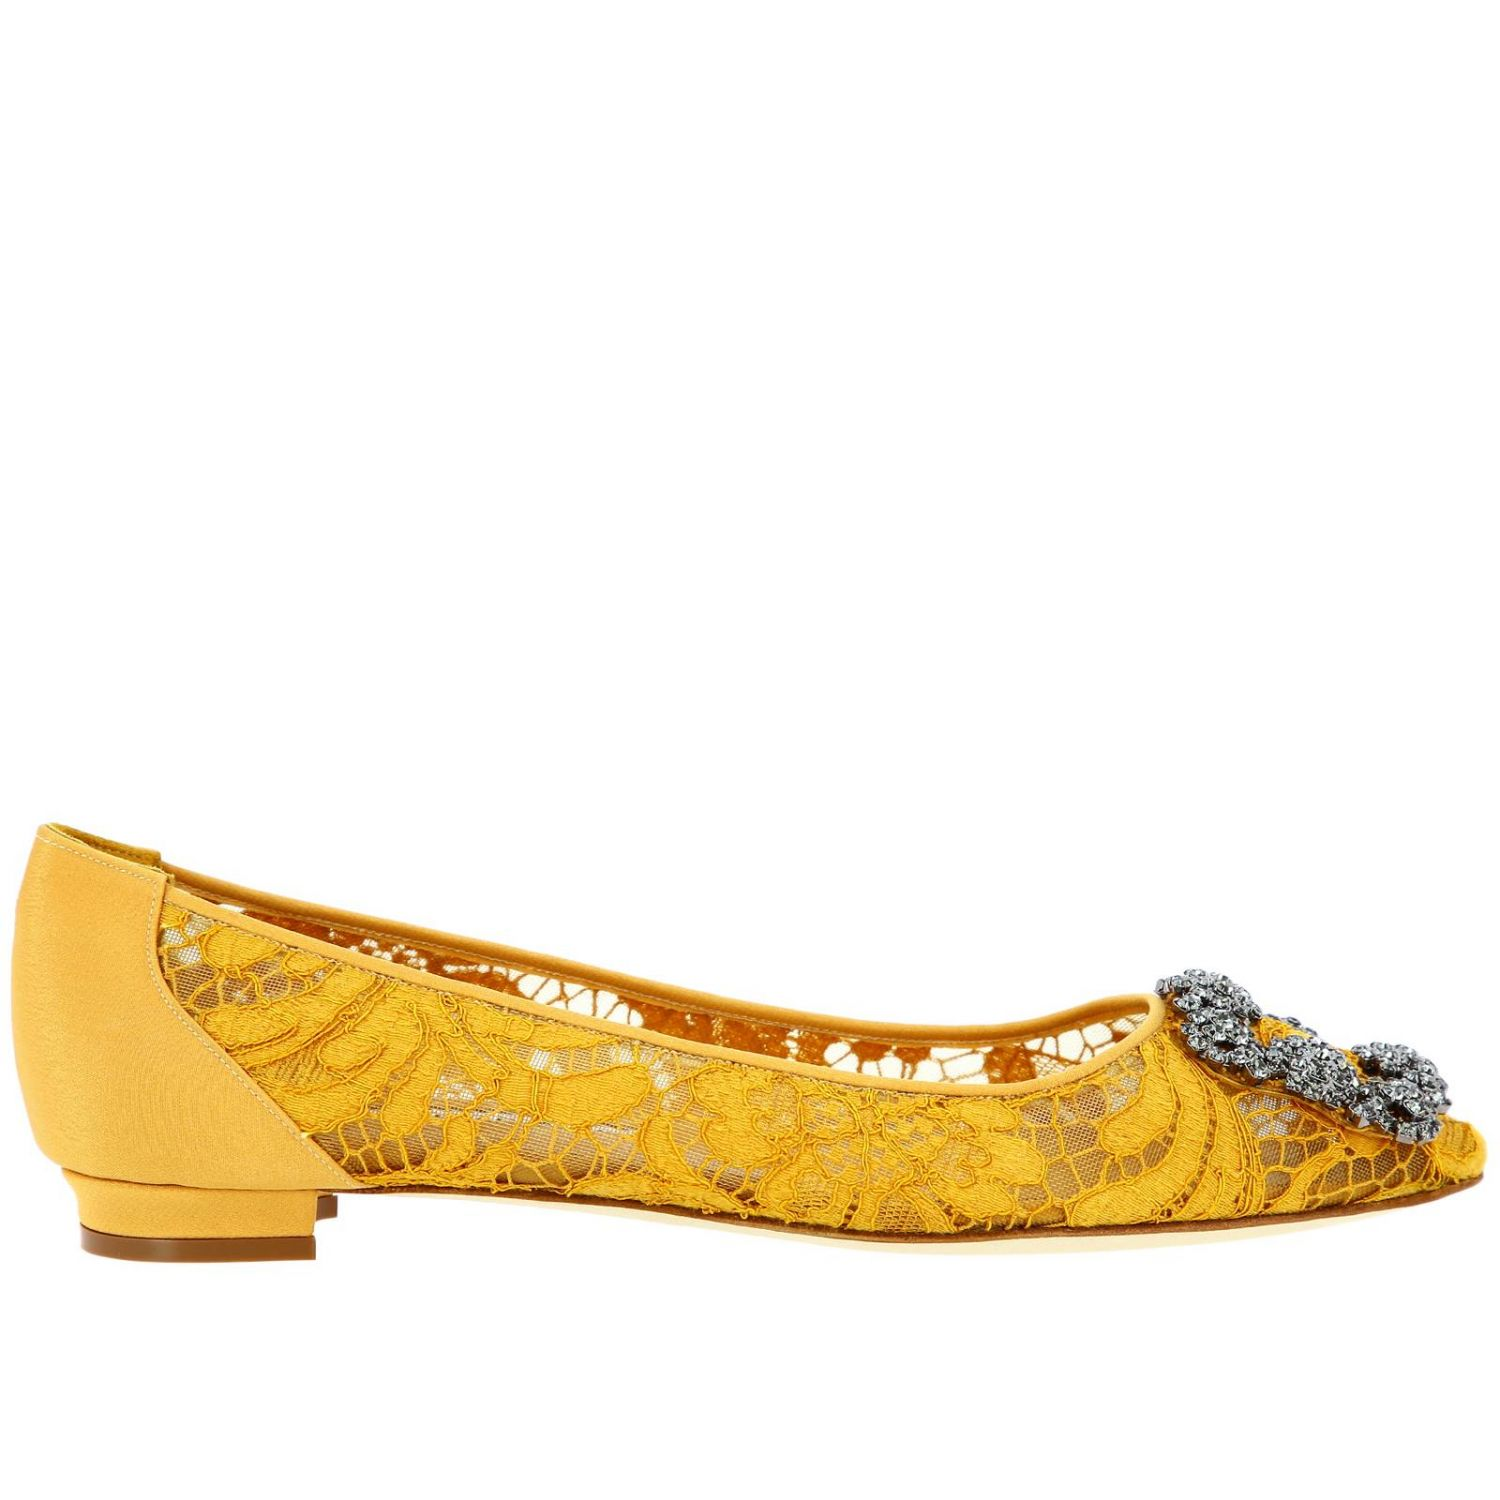 Hangisi Manolo Blahnik ballet flats in lace with smoky rhinestone buckle mustard 1